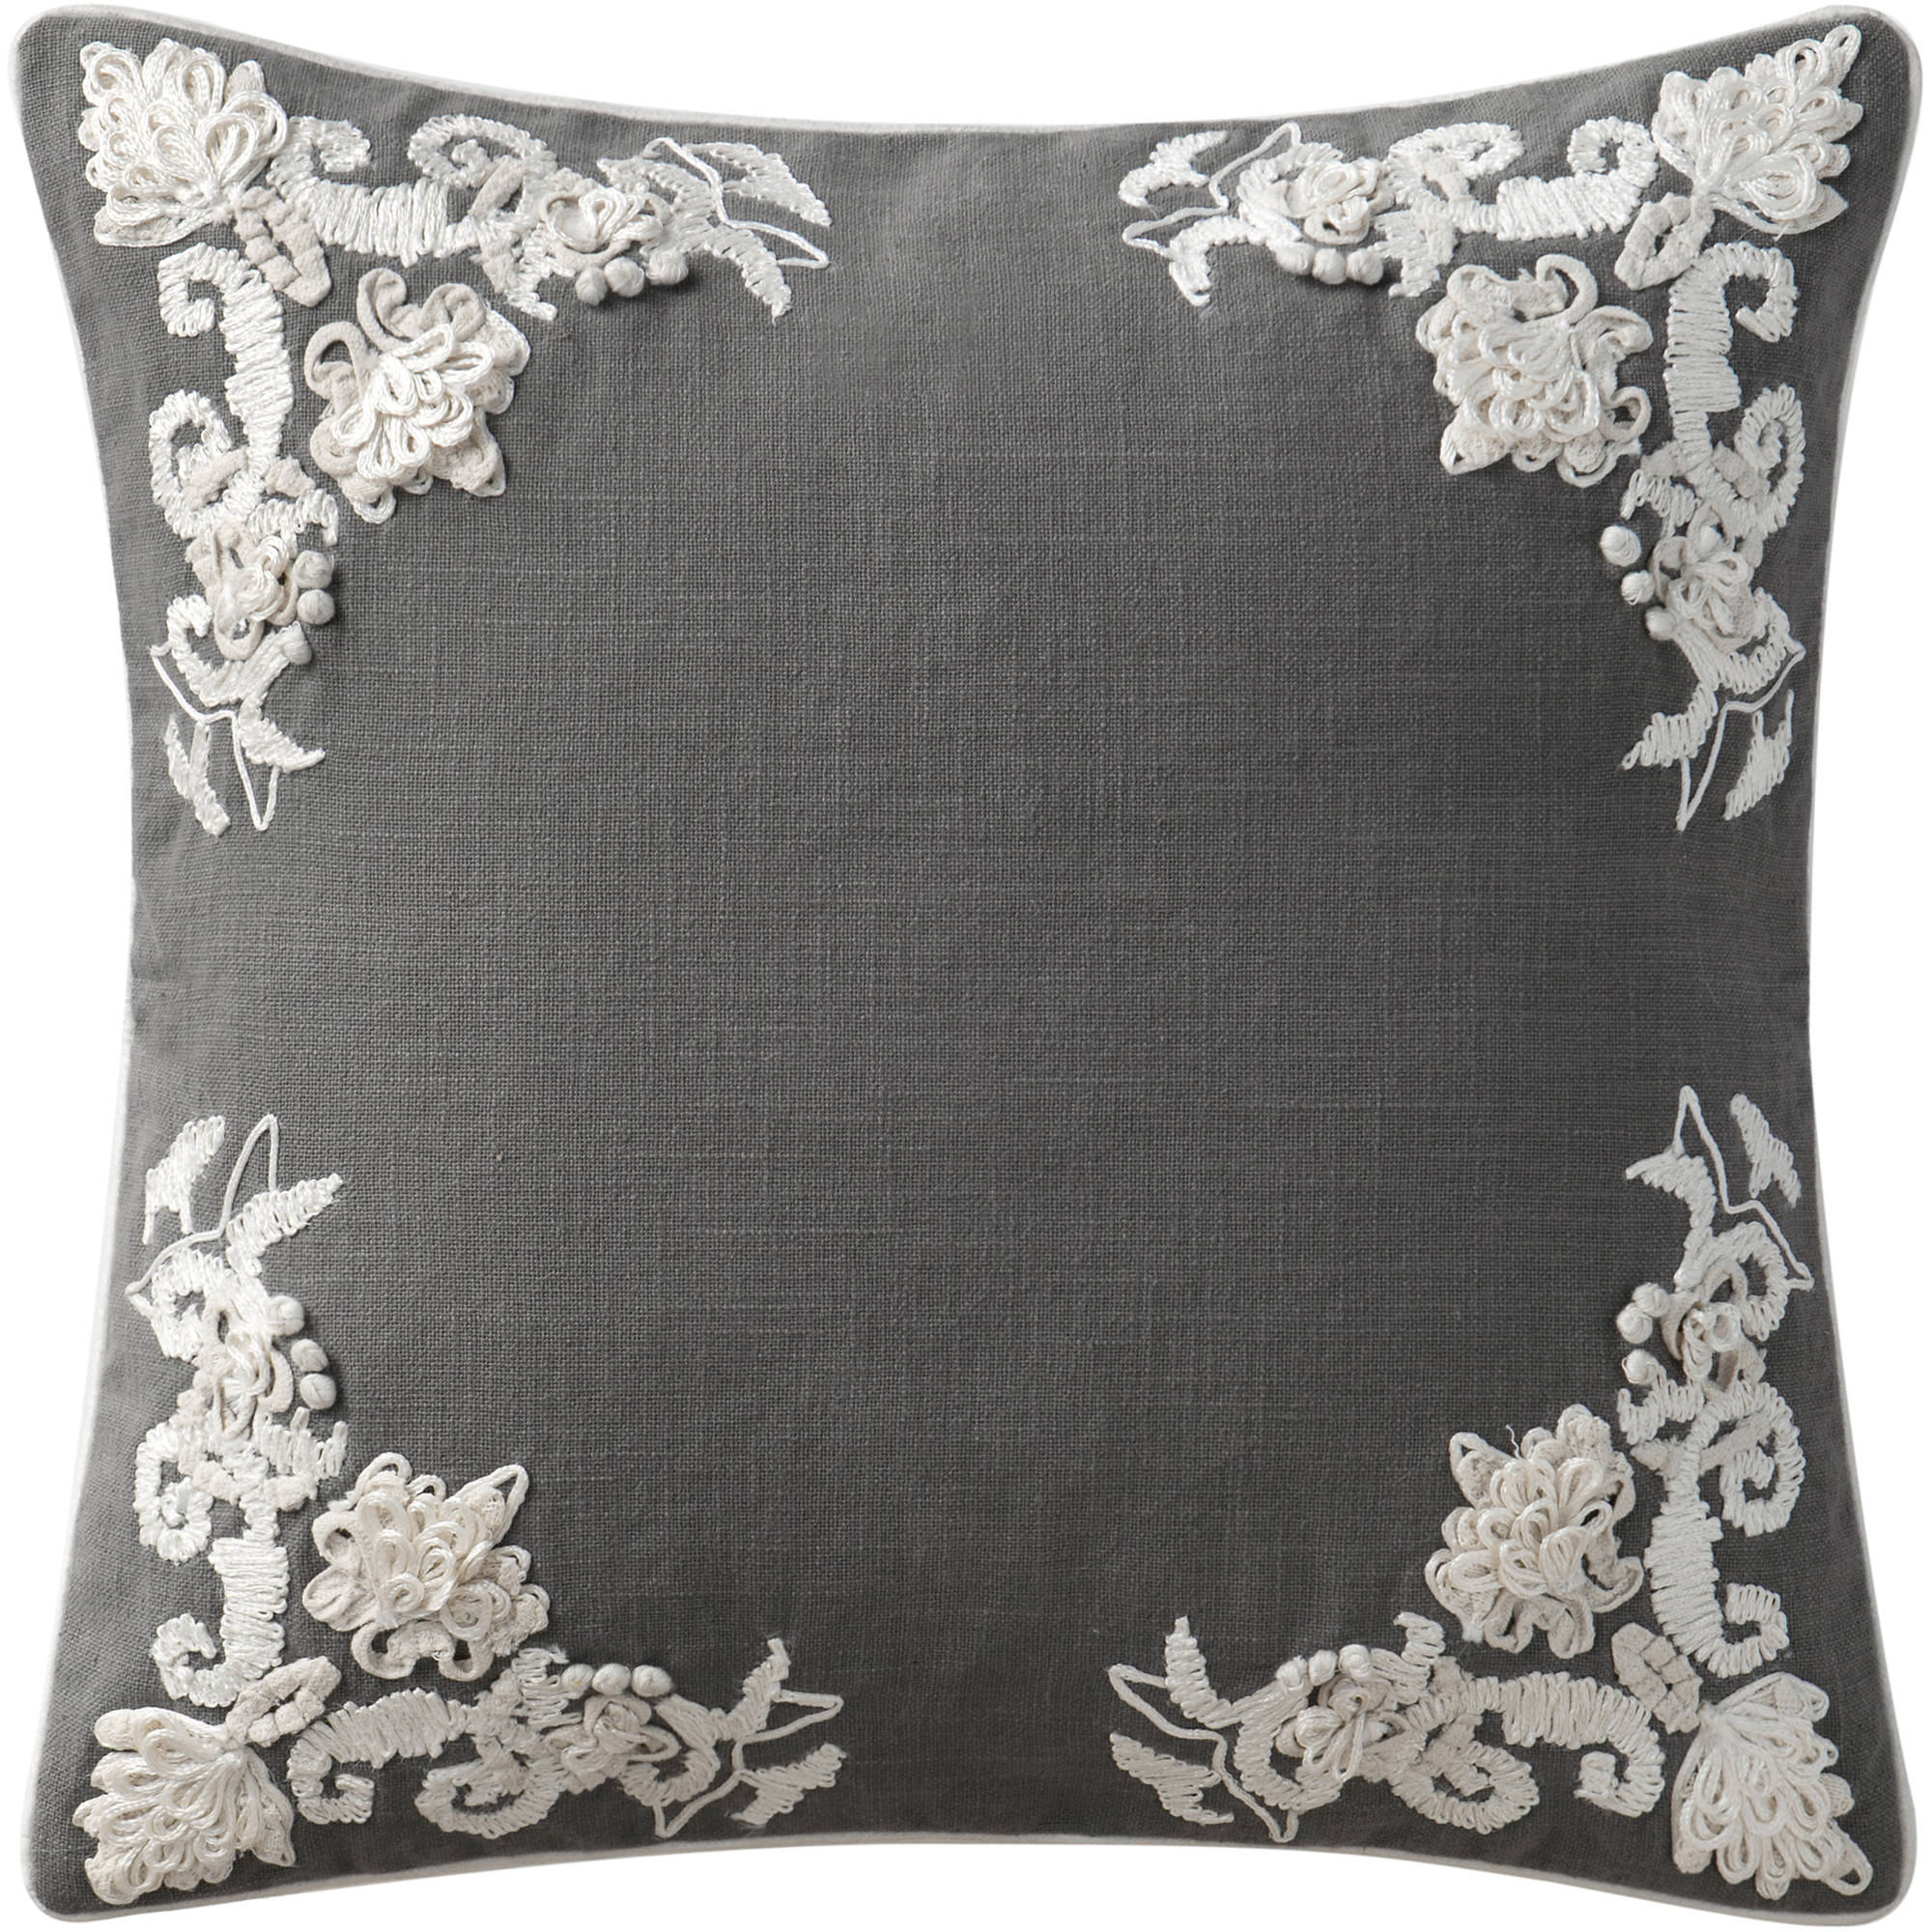 """VCNY Home Lyssa Floral Embroidered 18"""" x 18"""" Square Decorative Throw Pillow, 100 Percent Cotton"""